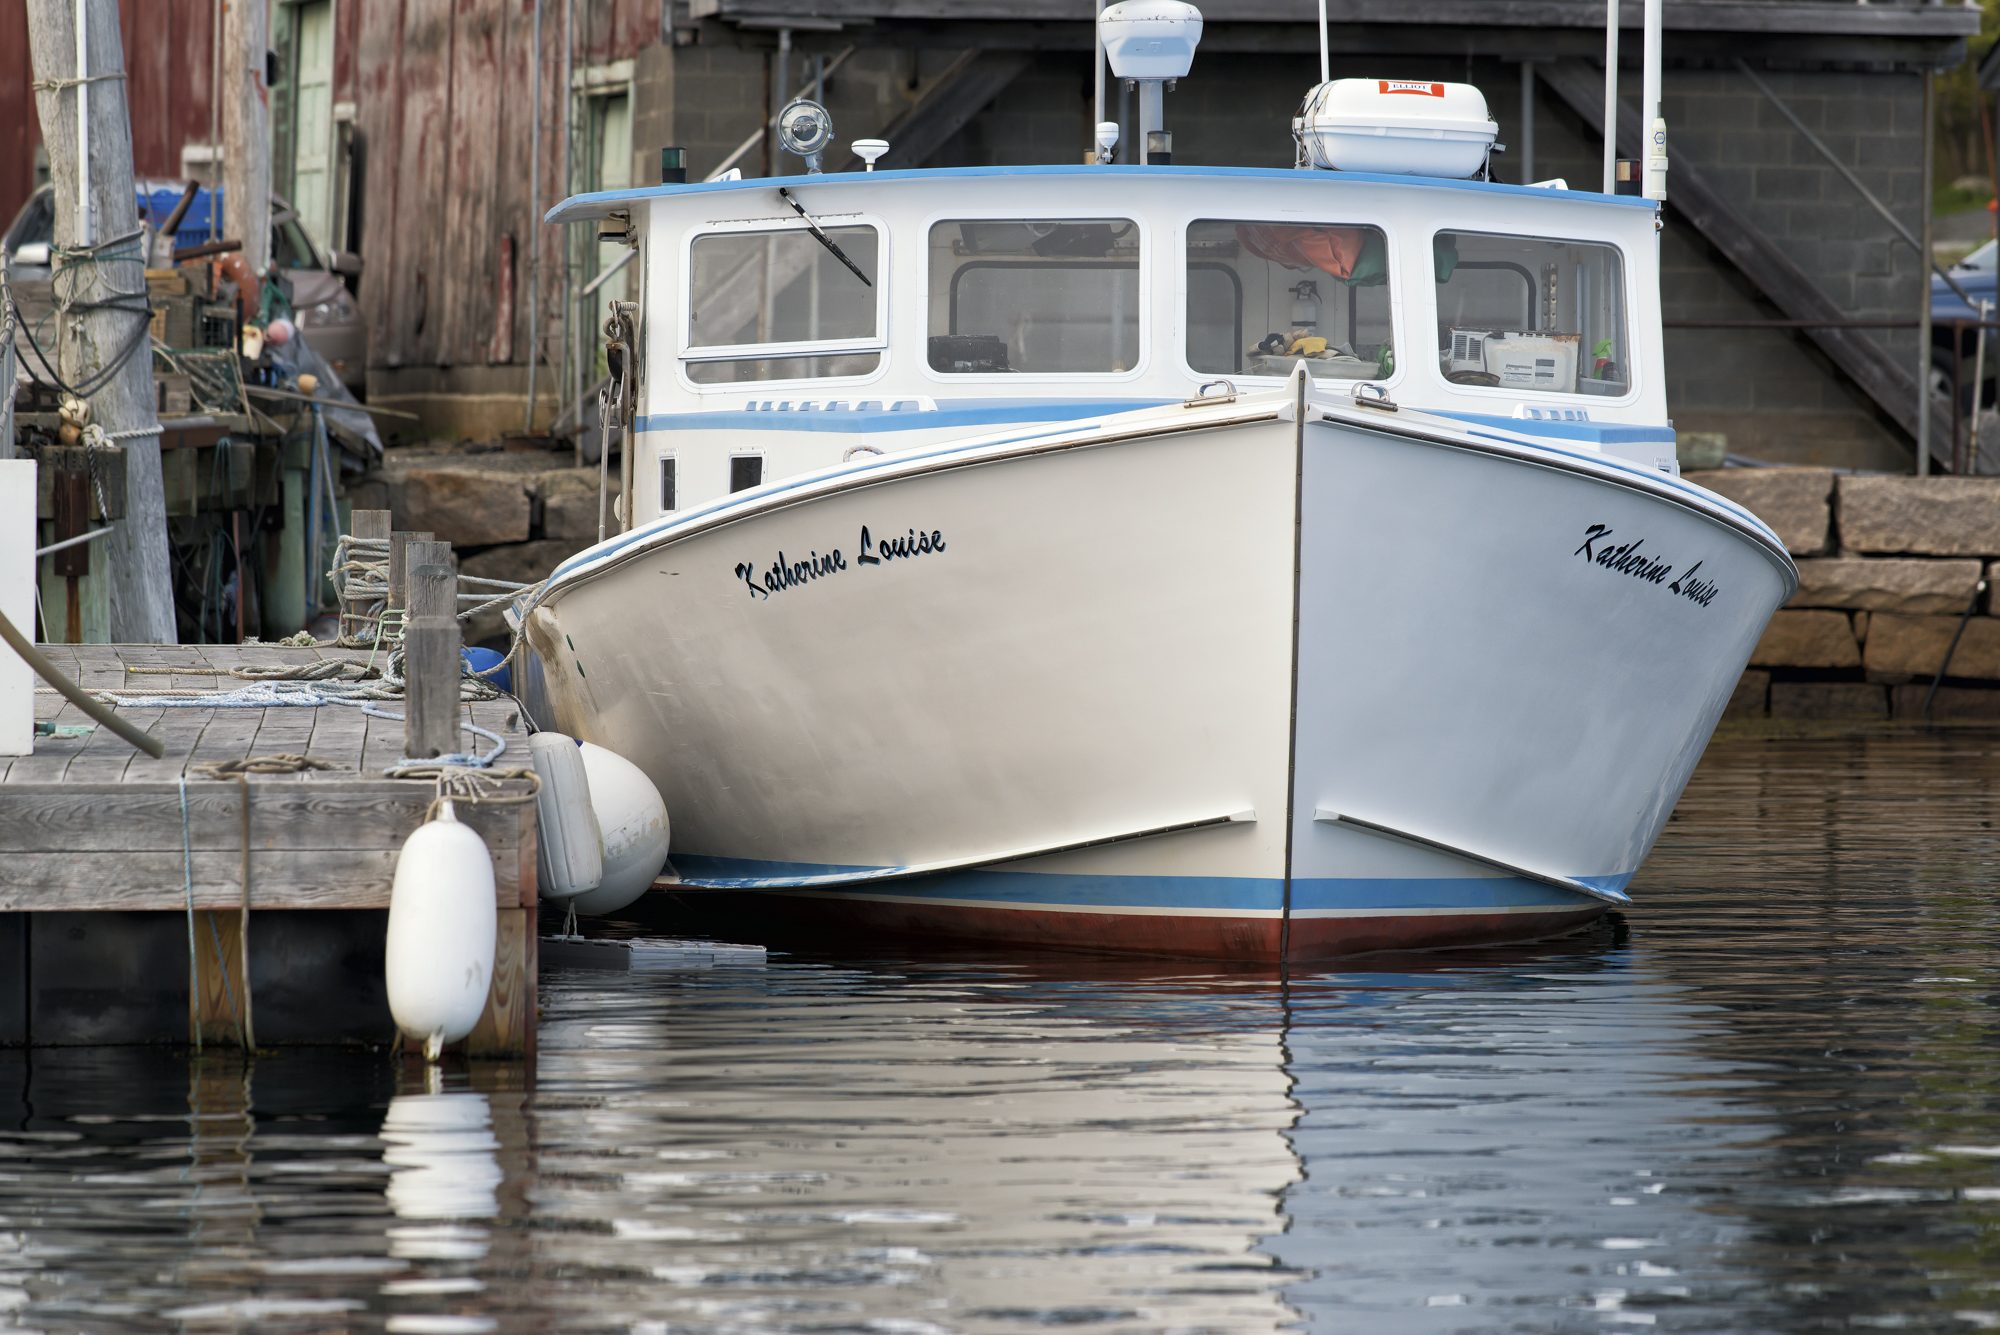 Katherine Louise lobster boat out of Southwest Harbor, Maine